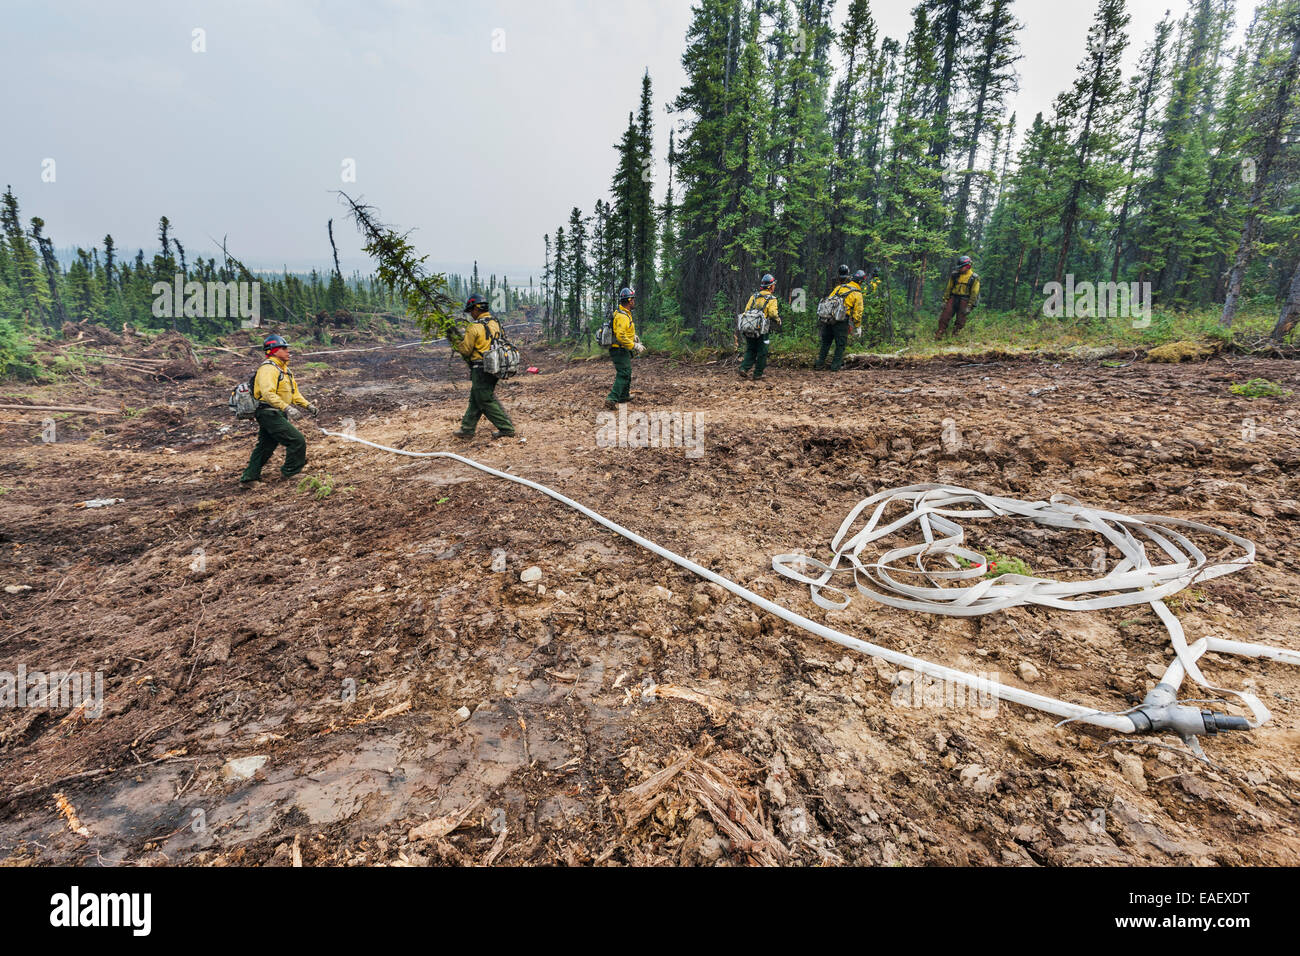 Firefighters work on prepping a controlled burn area on the Eagle Trail forest fire near Tok, Alaska, May, 2010. - Stock Image